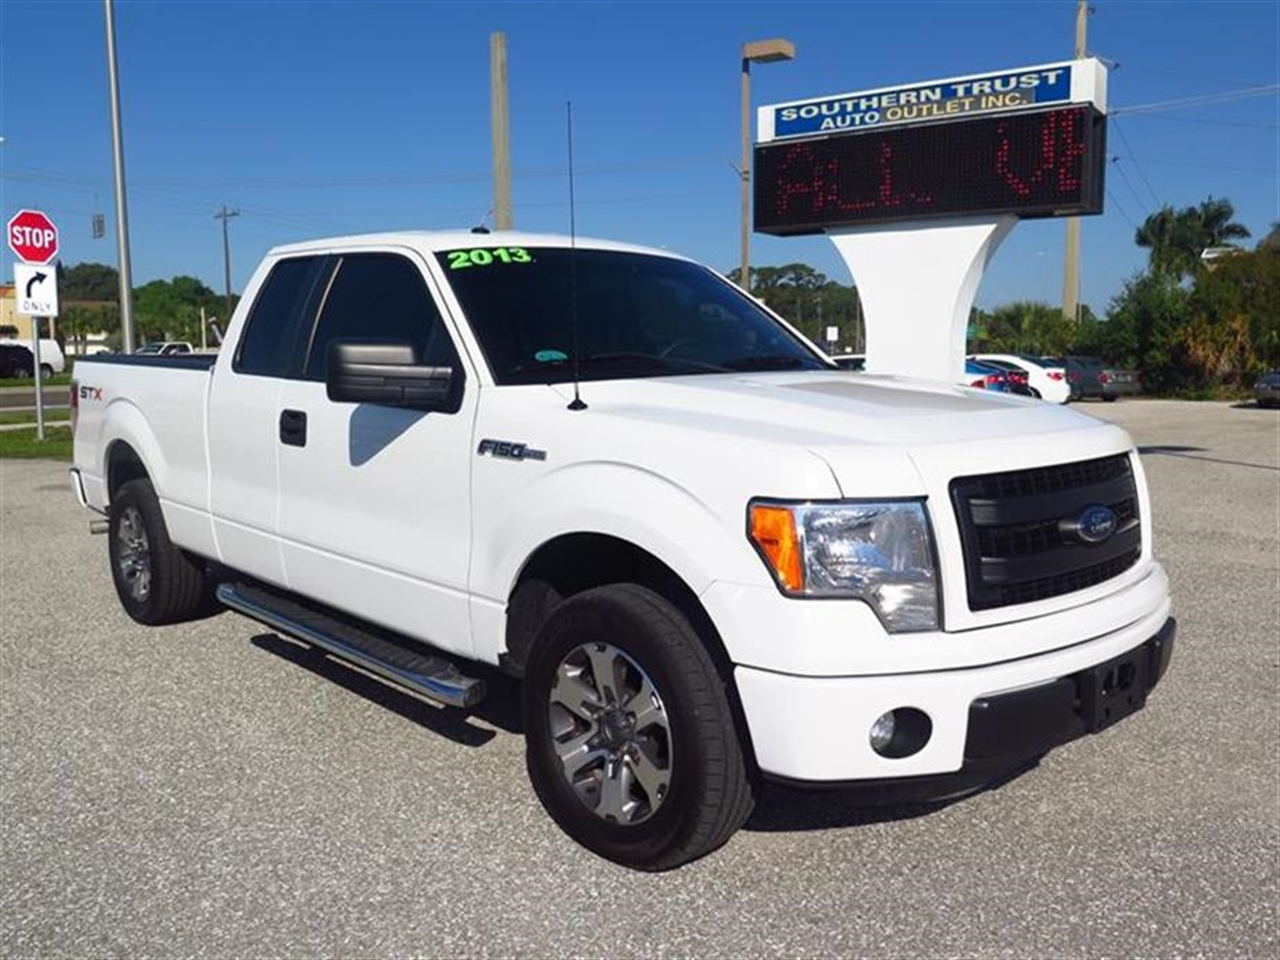 2013 FORD F-150 2WD SuperCab STX 57396 miles 6040 flip-up rear split bench seat Black ring wbla